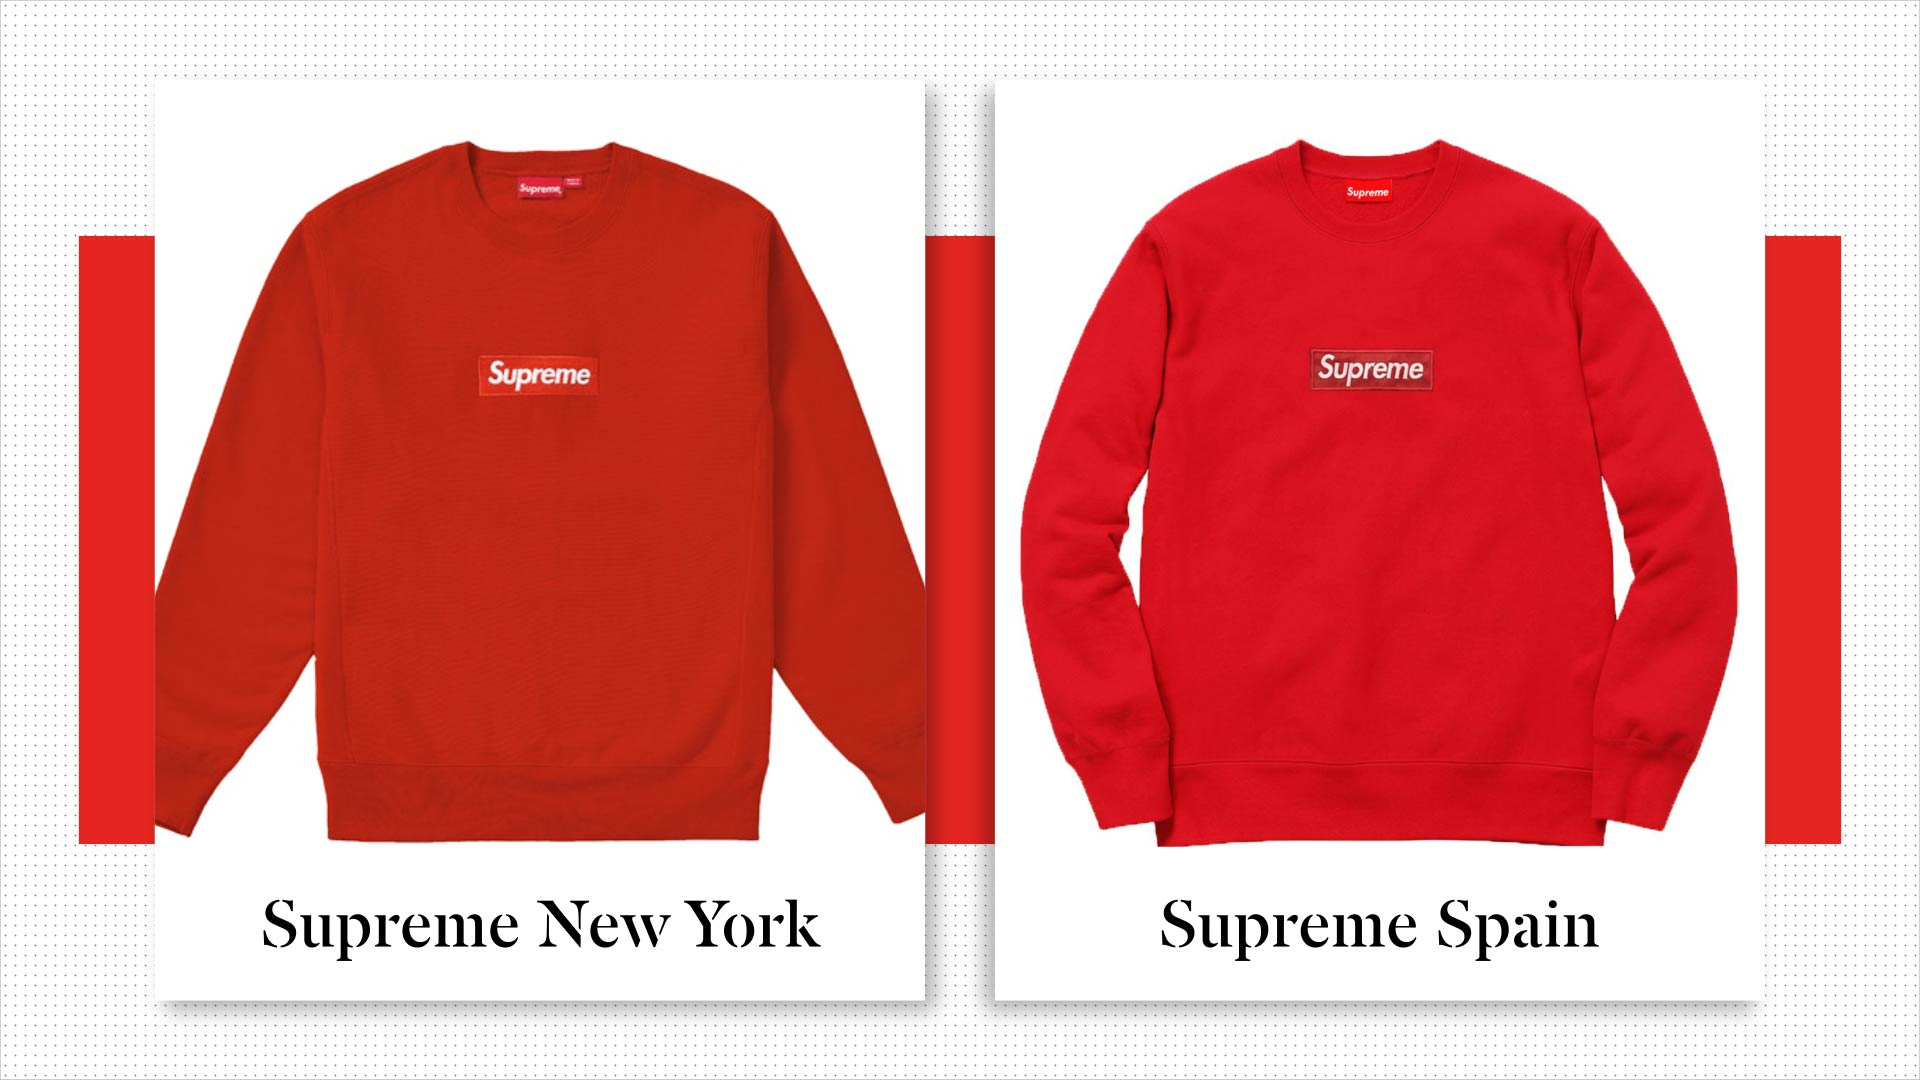 fb256122 Battle of Supremes: How 'legal fakes' are challenging a $1B brand - CNN  Style